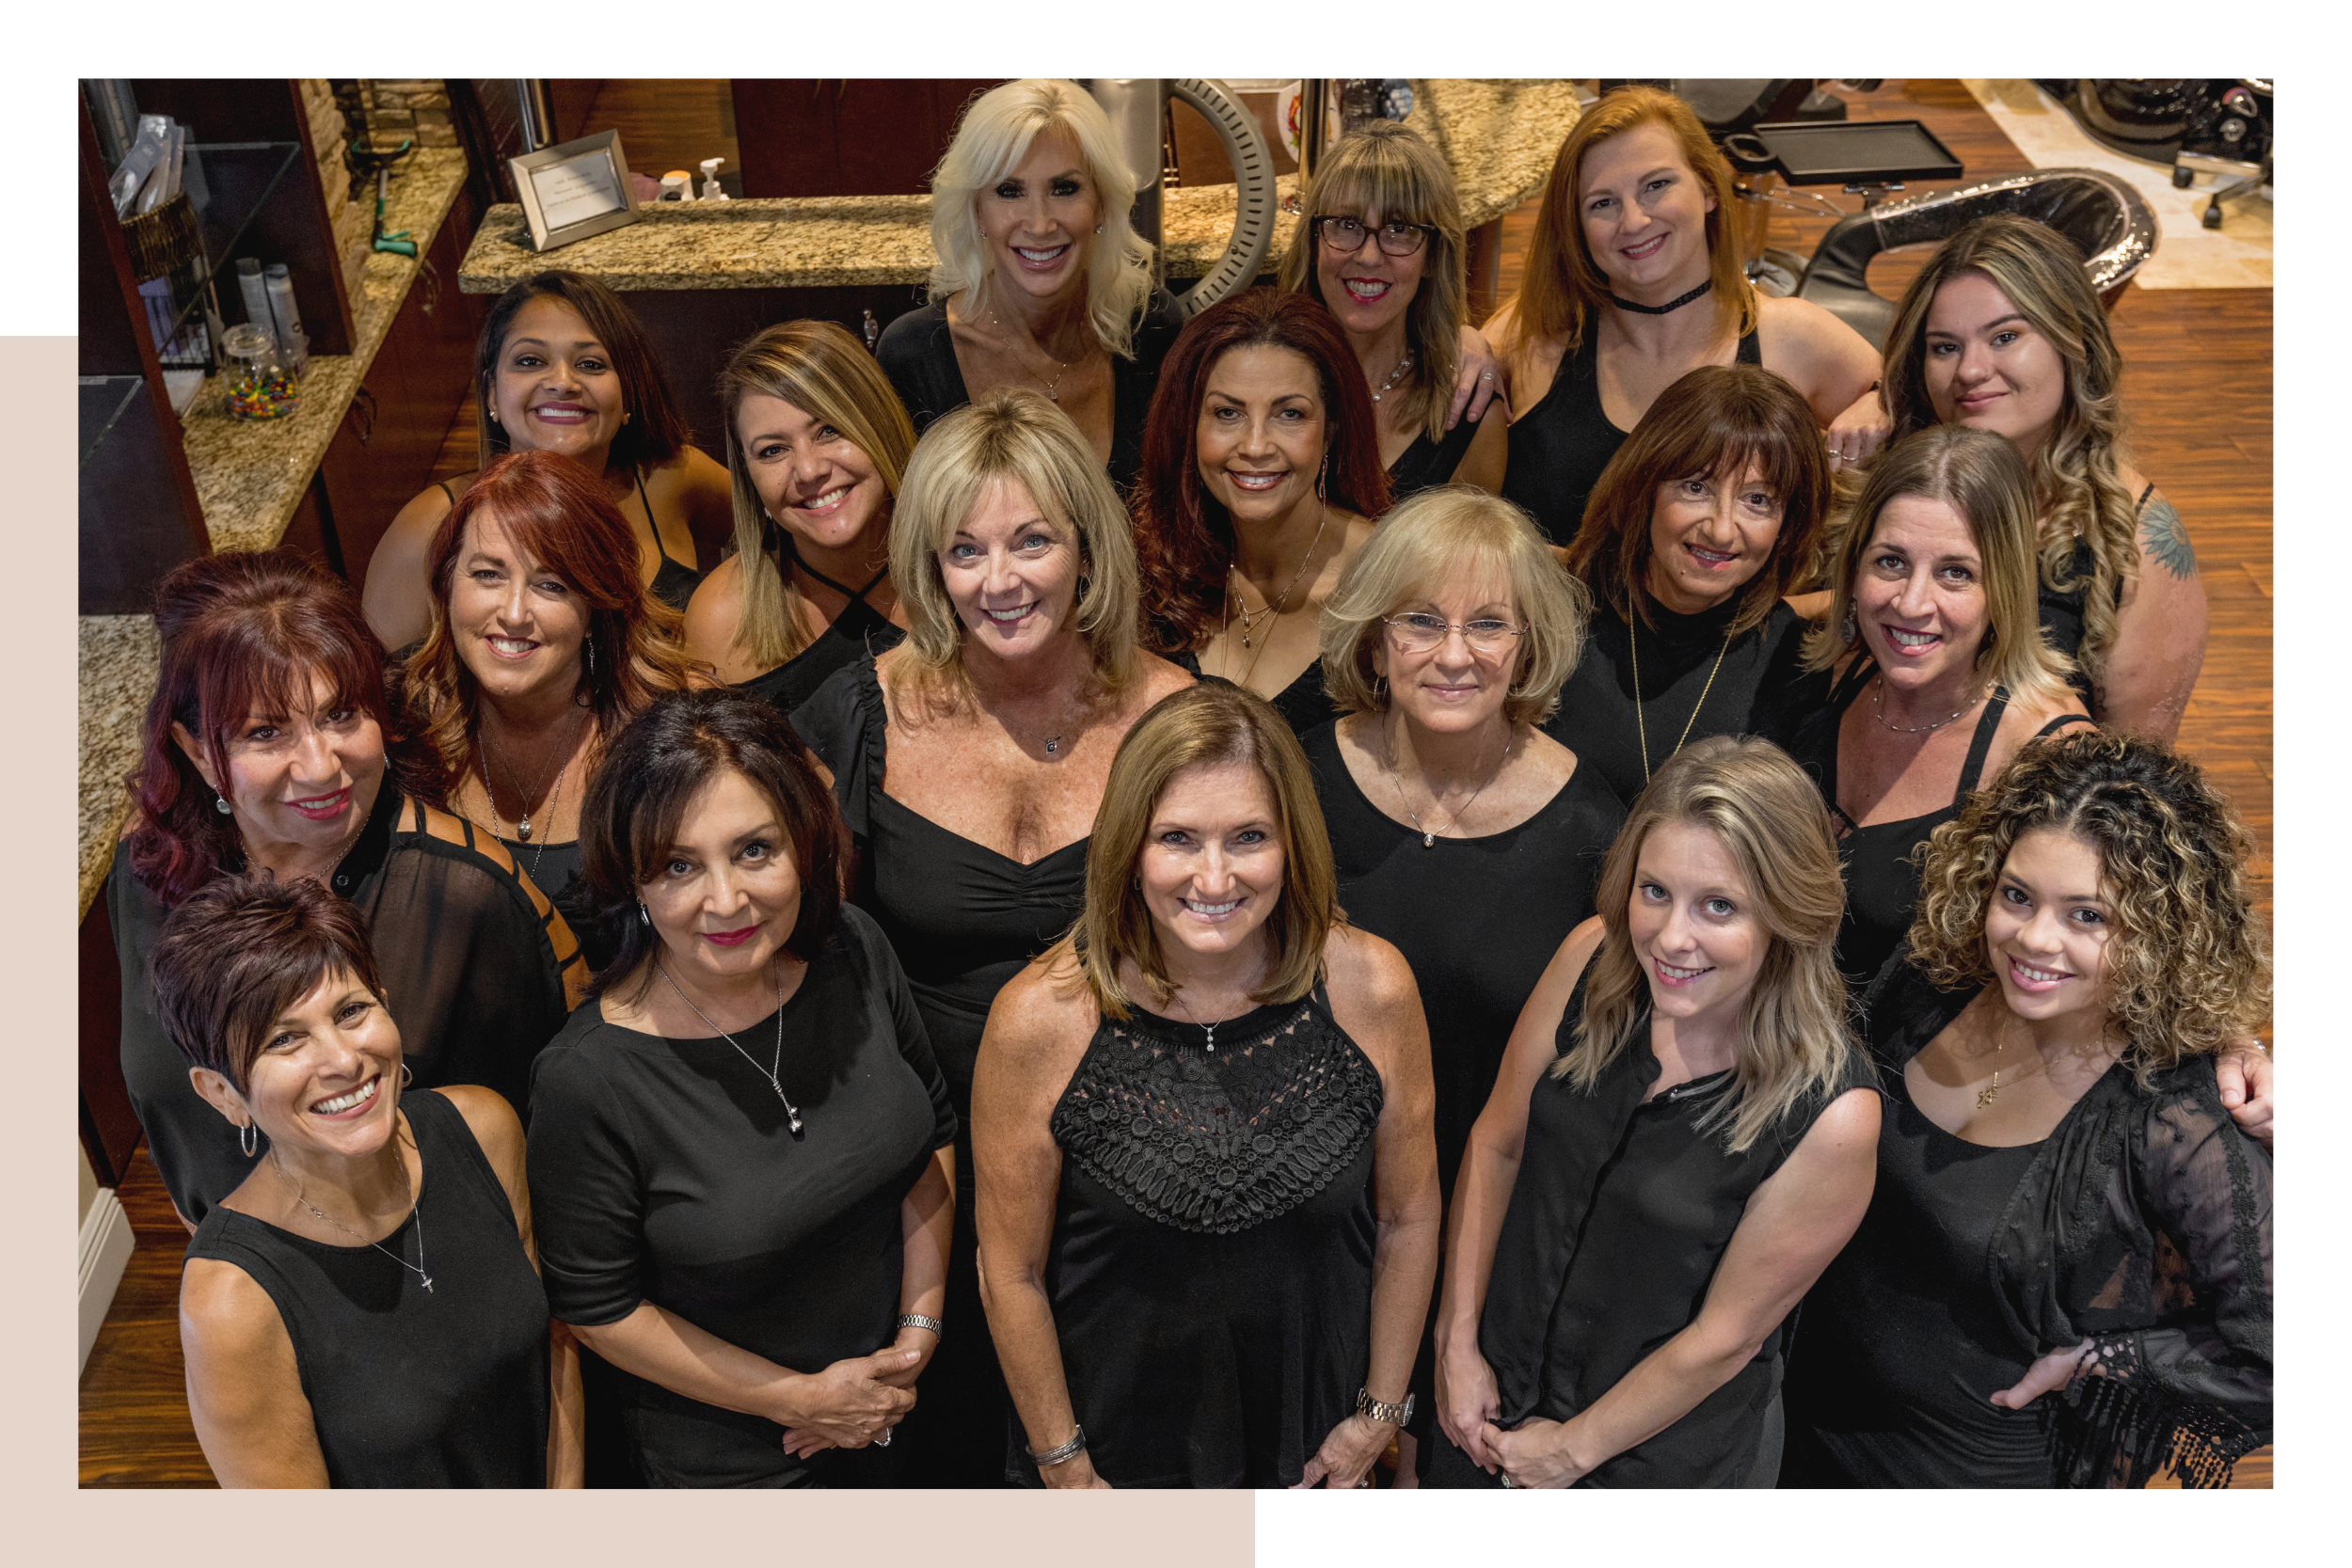 Welcome - Located in Cooper City, our full-service salon offers men and women the latest haircuts, styling, Goldwell color, conditioning treatments, relaxers, keratin treatments, hair extensions, and more. Our experienced team of artists are ready to assist clients with all of their beauty needs.